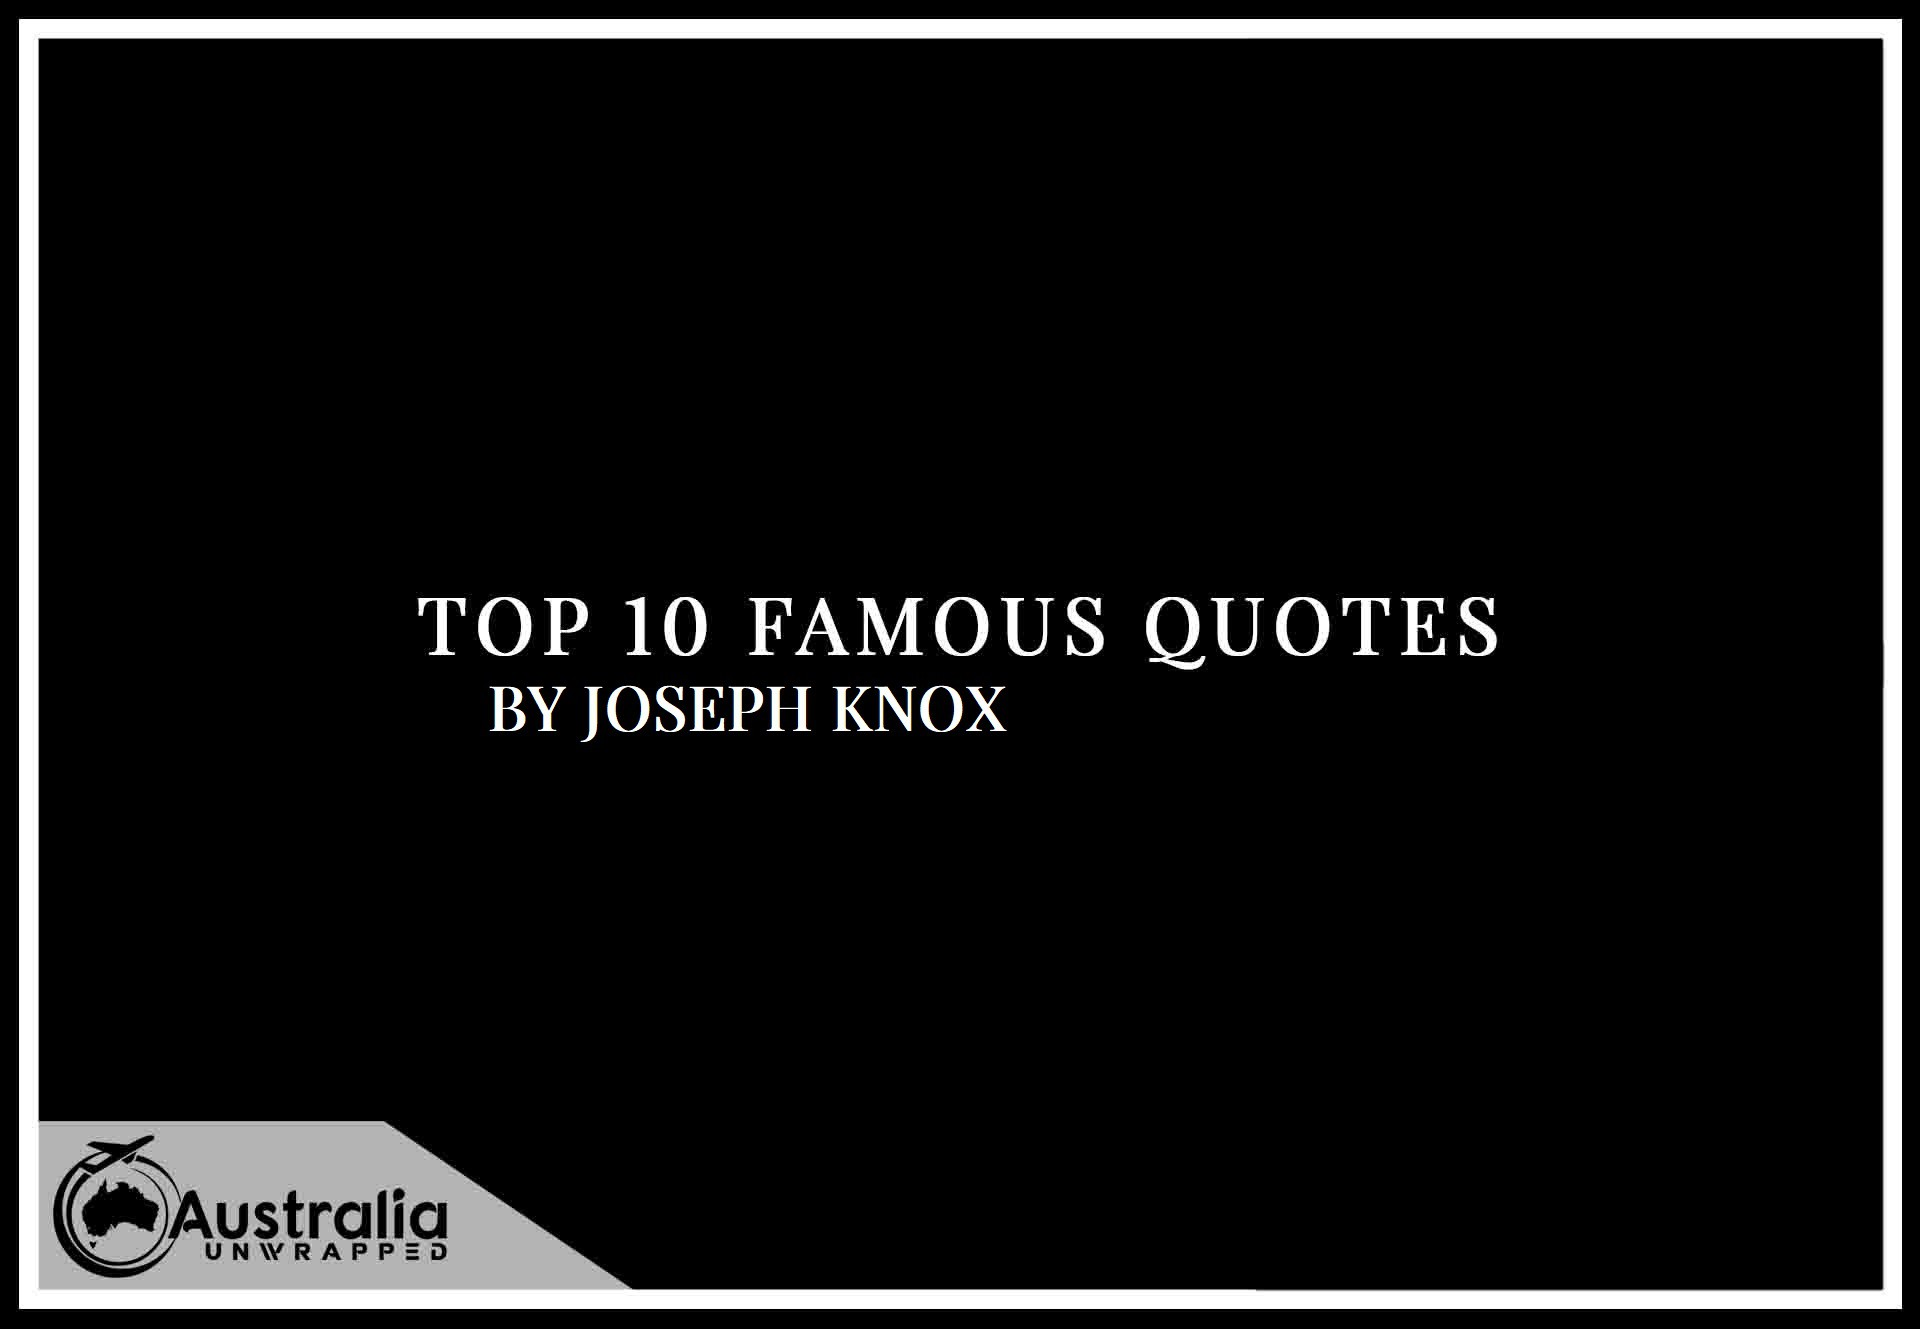 Top 10 Famous Quotes by Author Joseph Knox